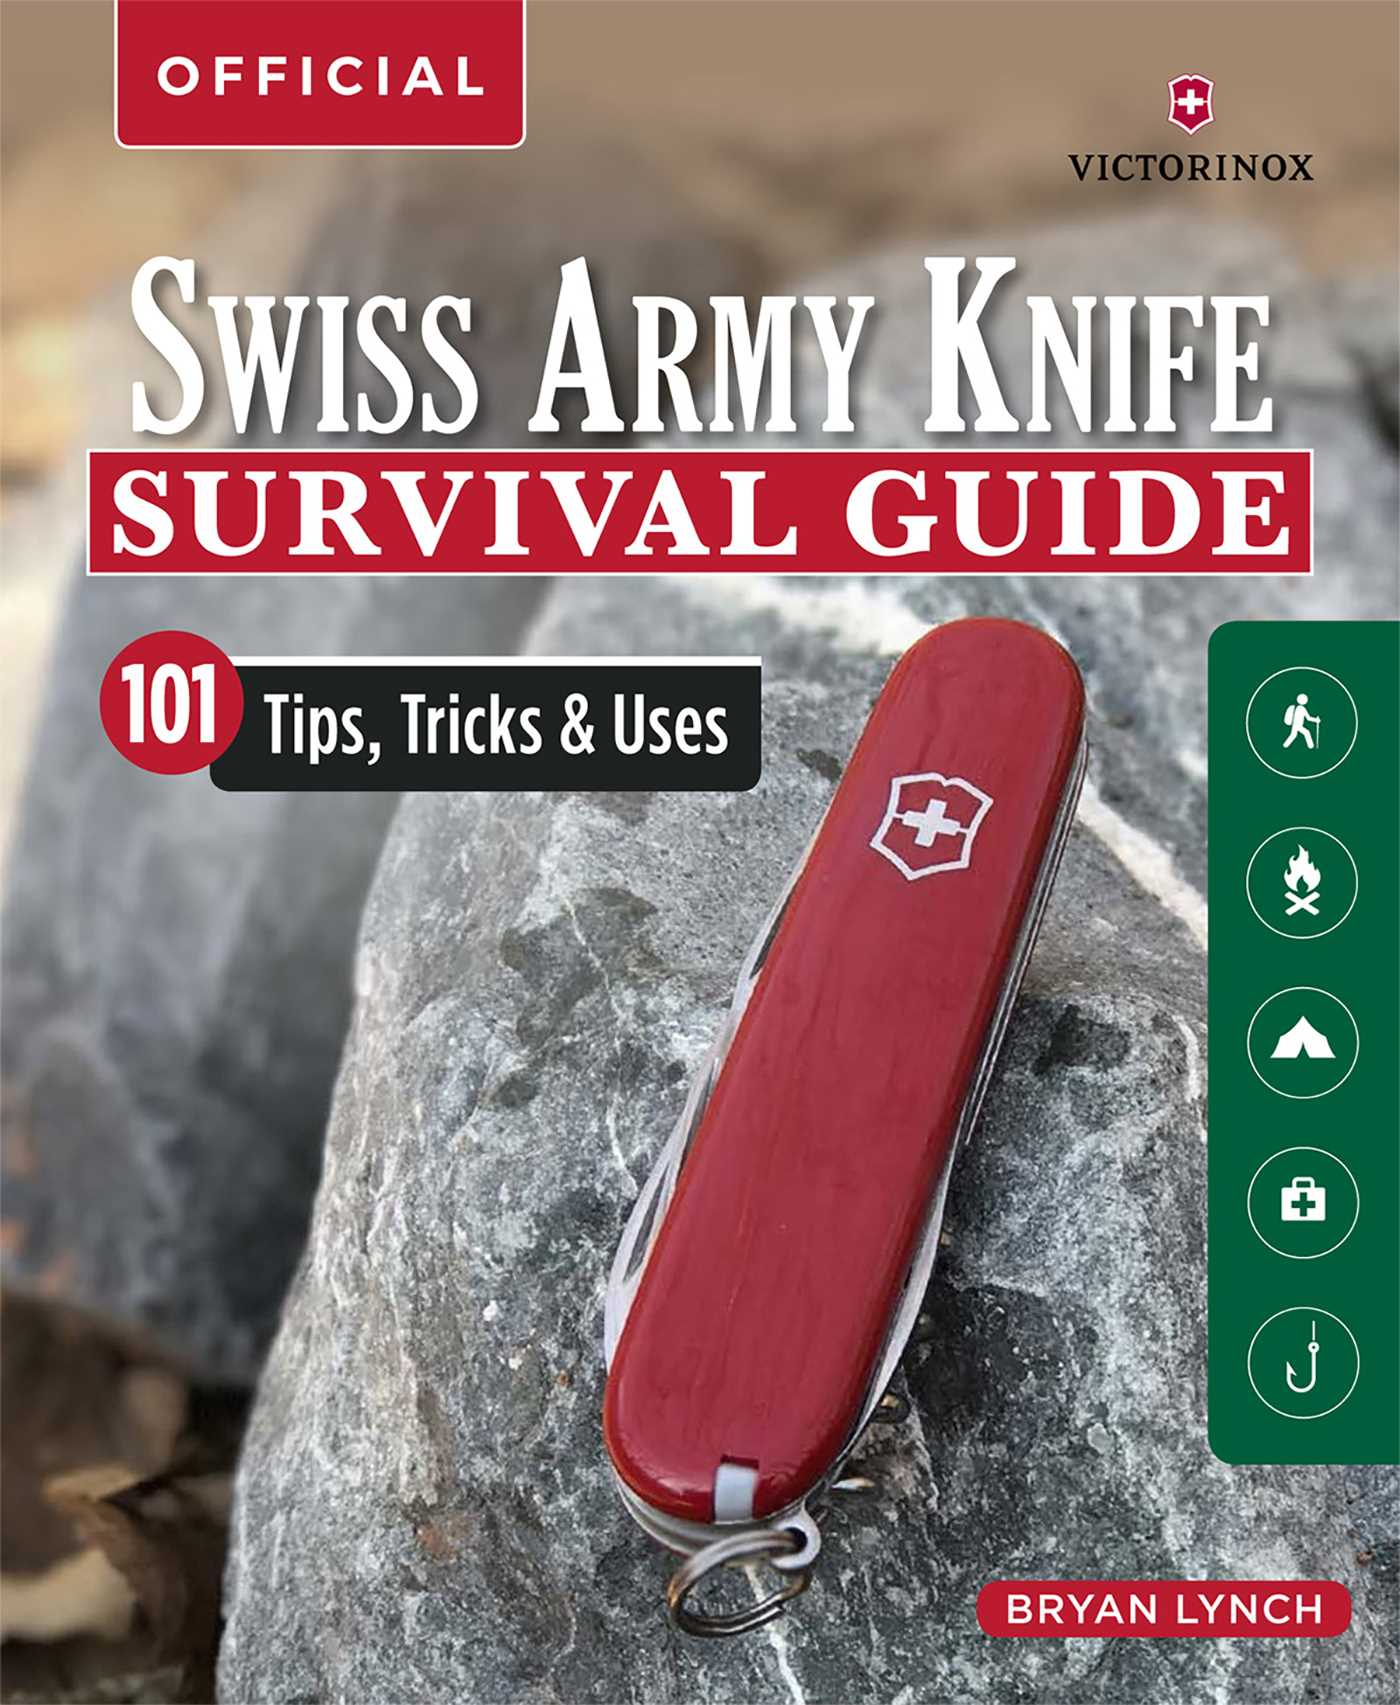 Victorinox Swiss Army Knife Camping Outdoor Survival Guide Book By Bryan Lynch Official Publisher Page Simon Schuster Au